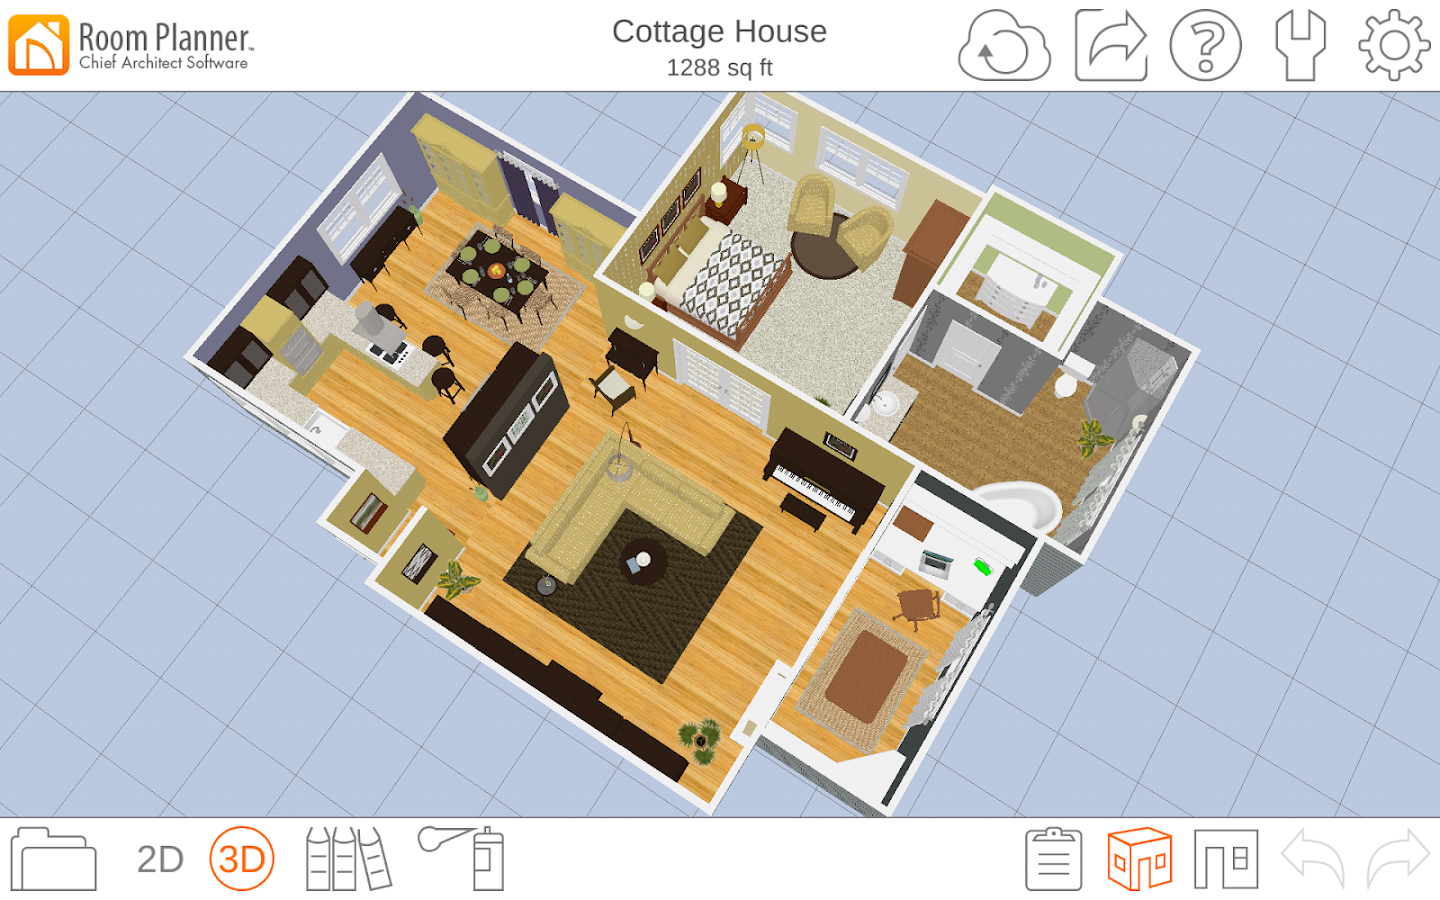 Room planner home design android apps on google play for Room planning website